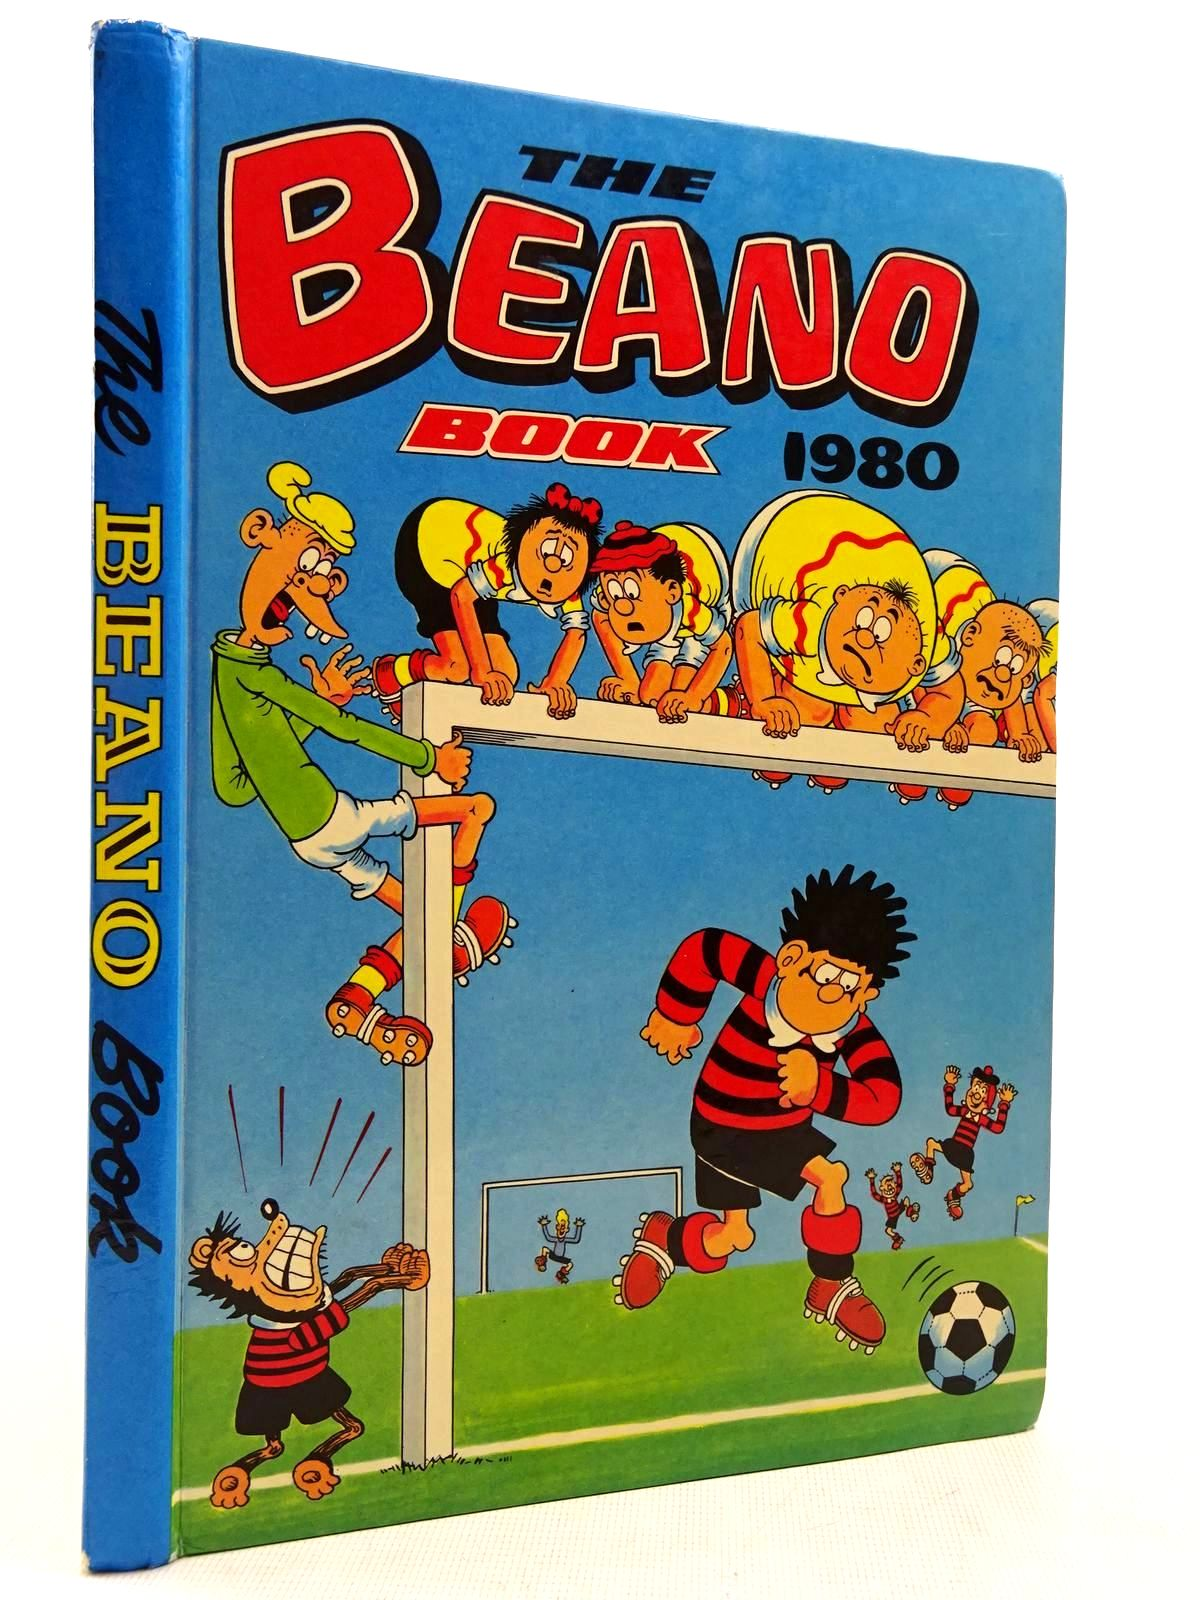 Photo of THE BEANO BOOK 1980 published by D.C. Thomson & Co Ltd. (STOCK CODE: 2129032)  for sale by Stella & Rose's Books